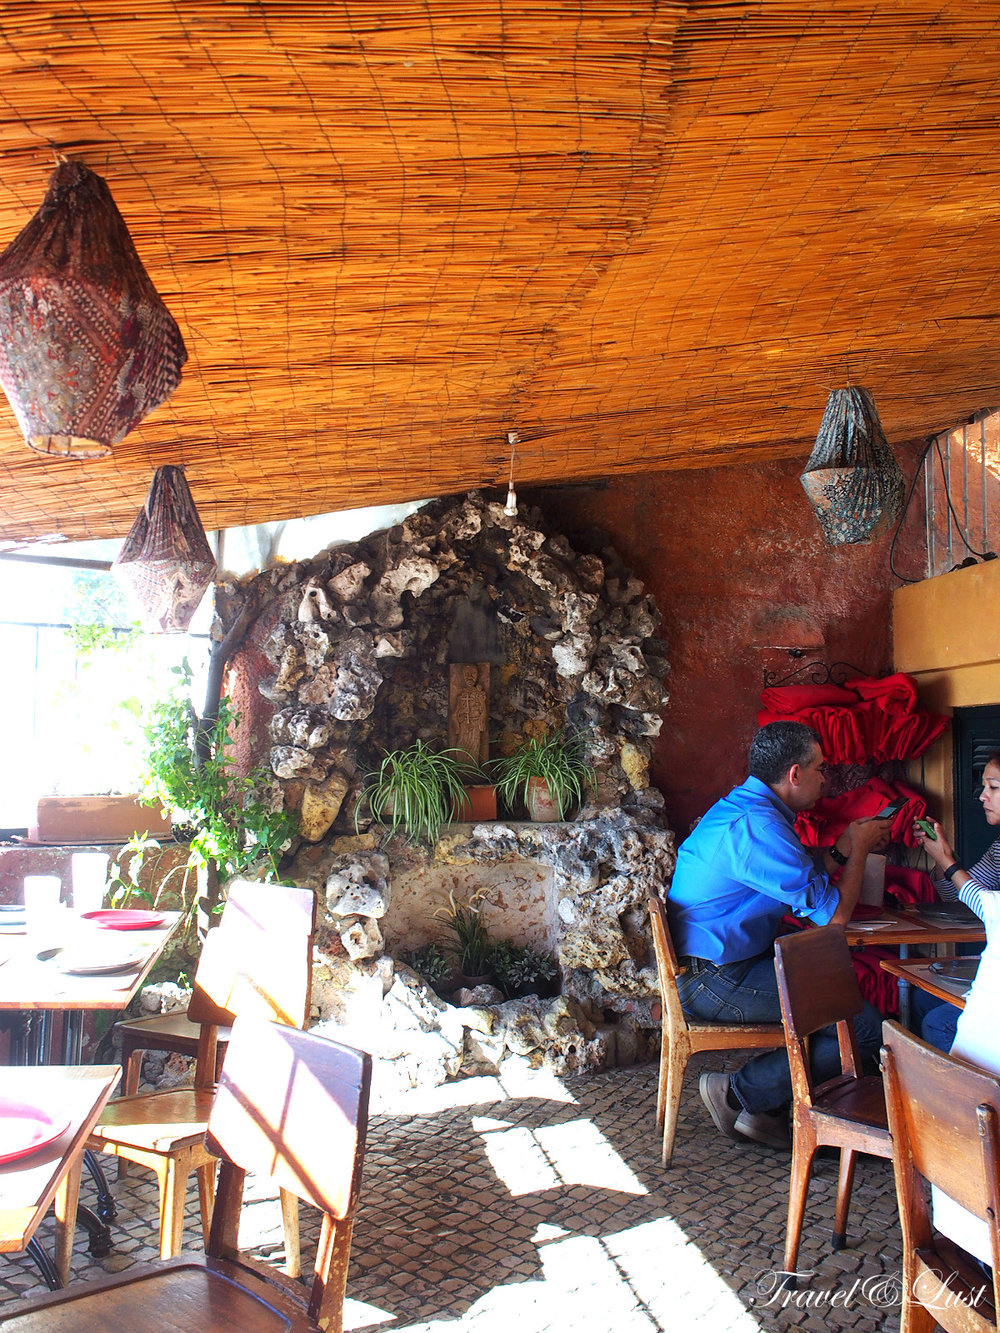 Our seating area was quite chic, with a hint of folklore and a stunning backdrop that is more like a mirador.